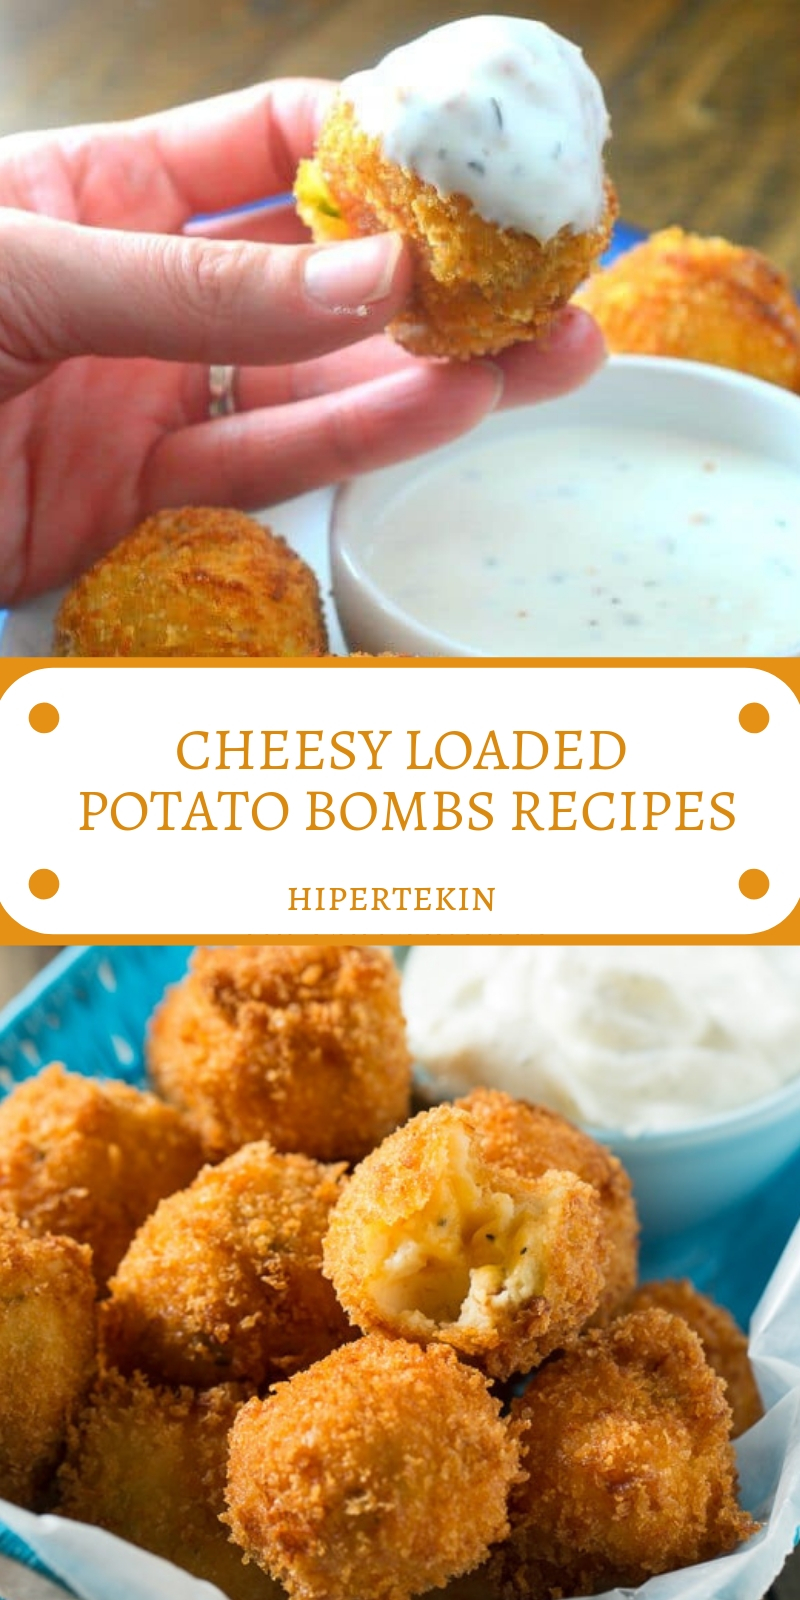 CHEESY LOADED POTATO BOMBS RECIPES